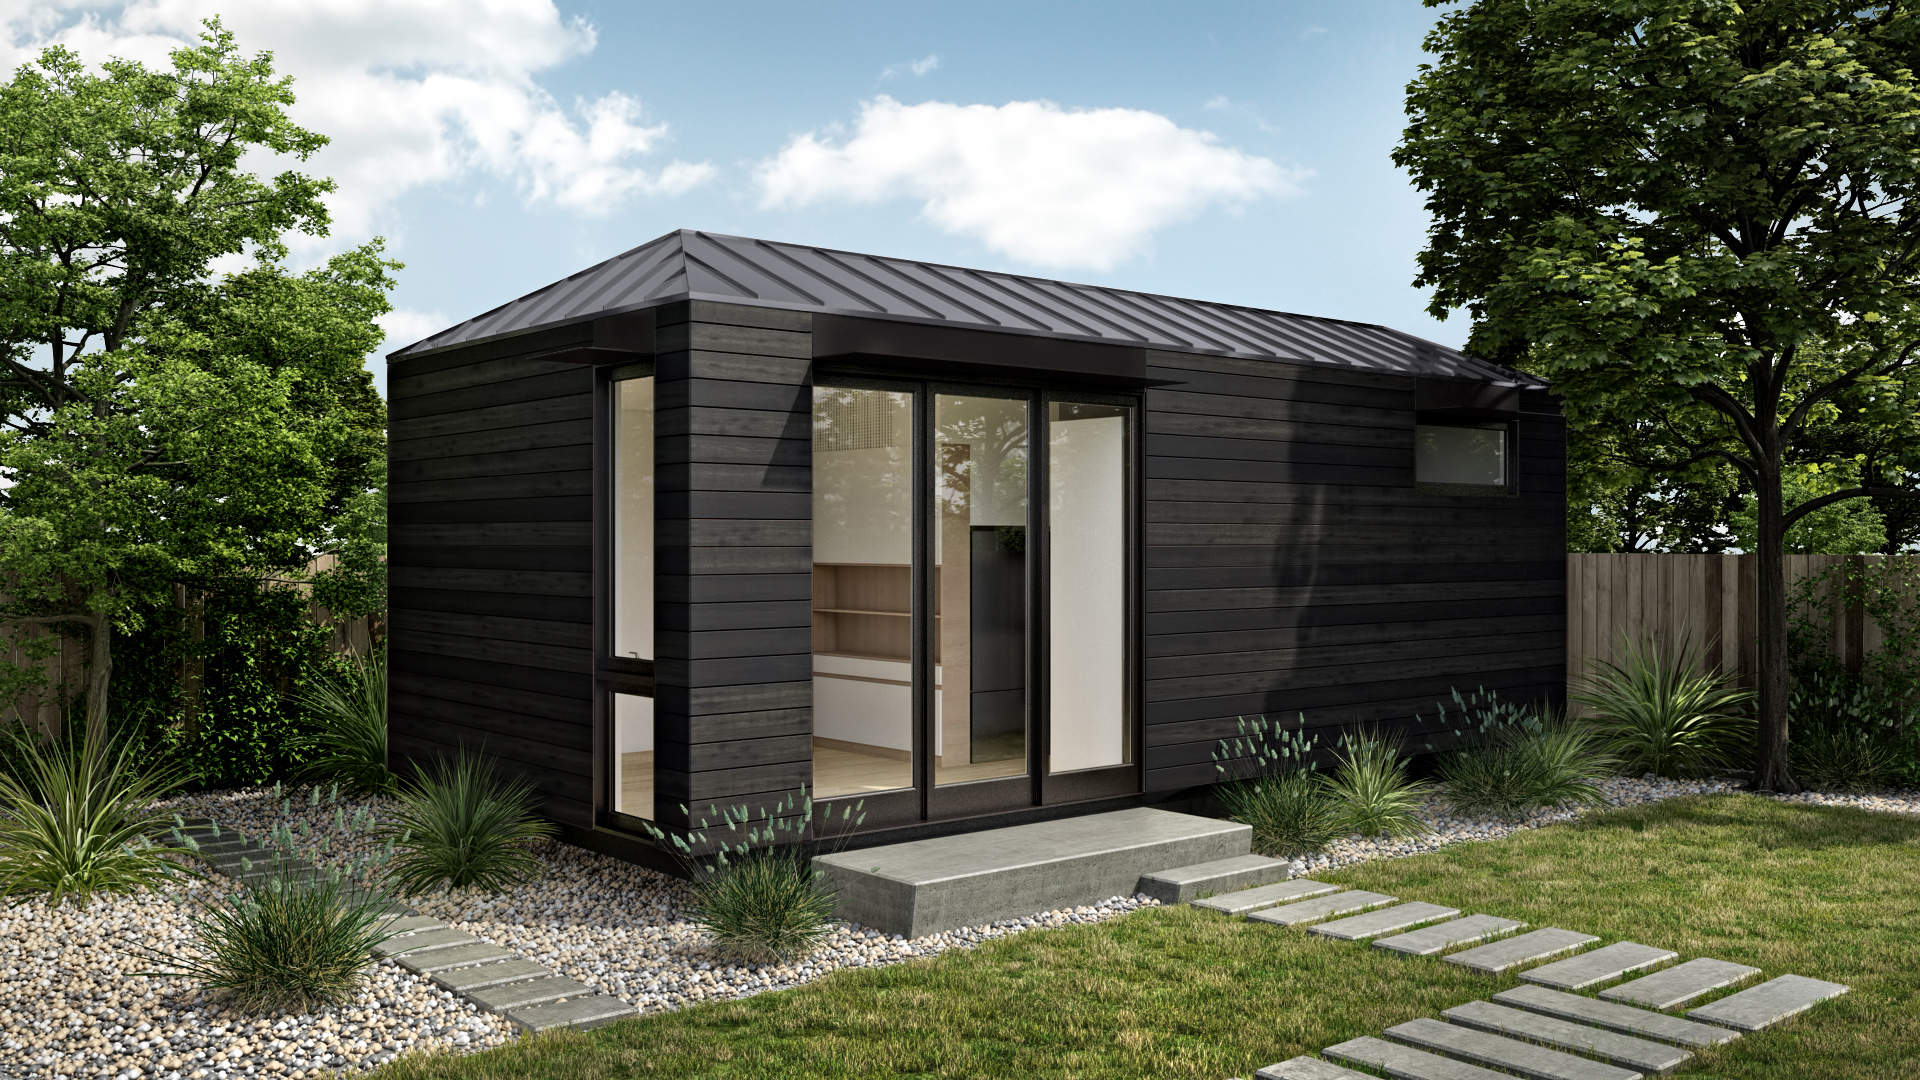 New prefab home can be yours for under $100K